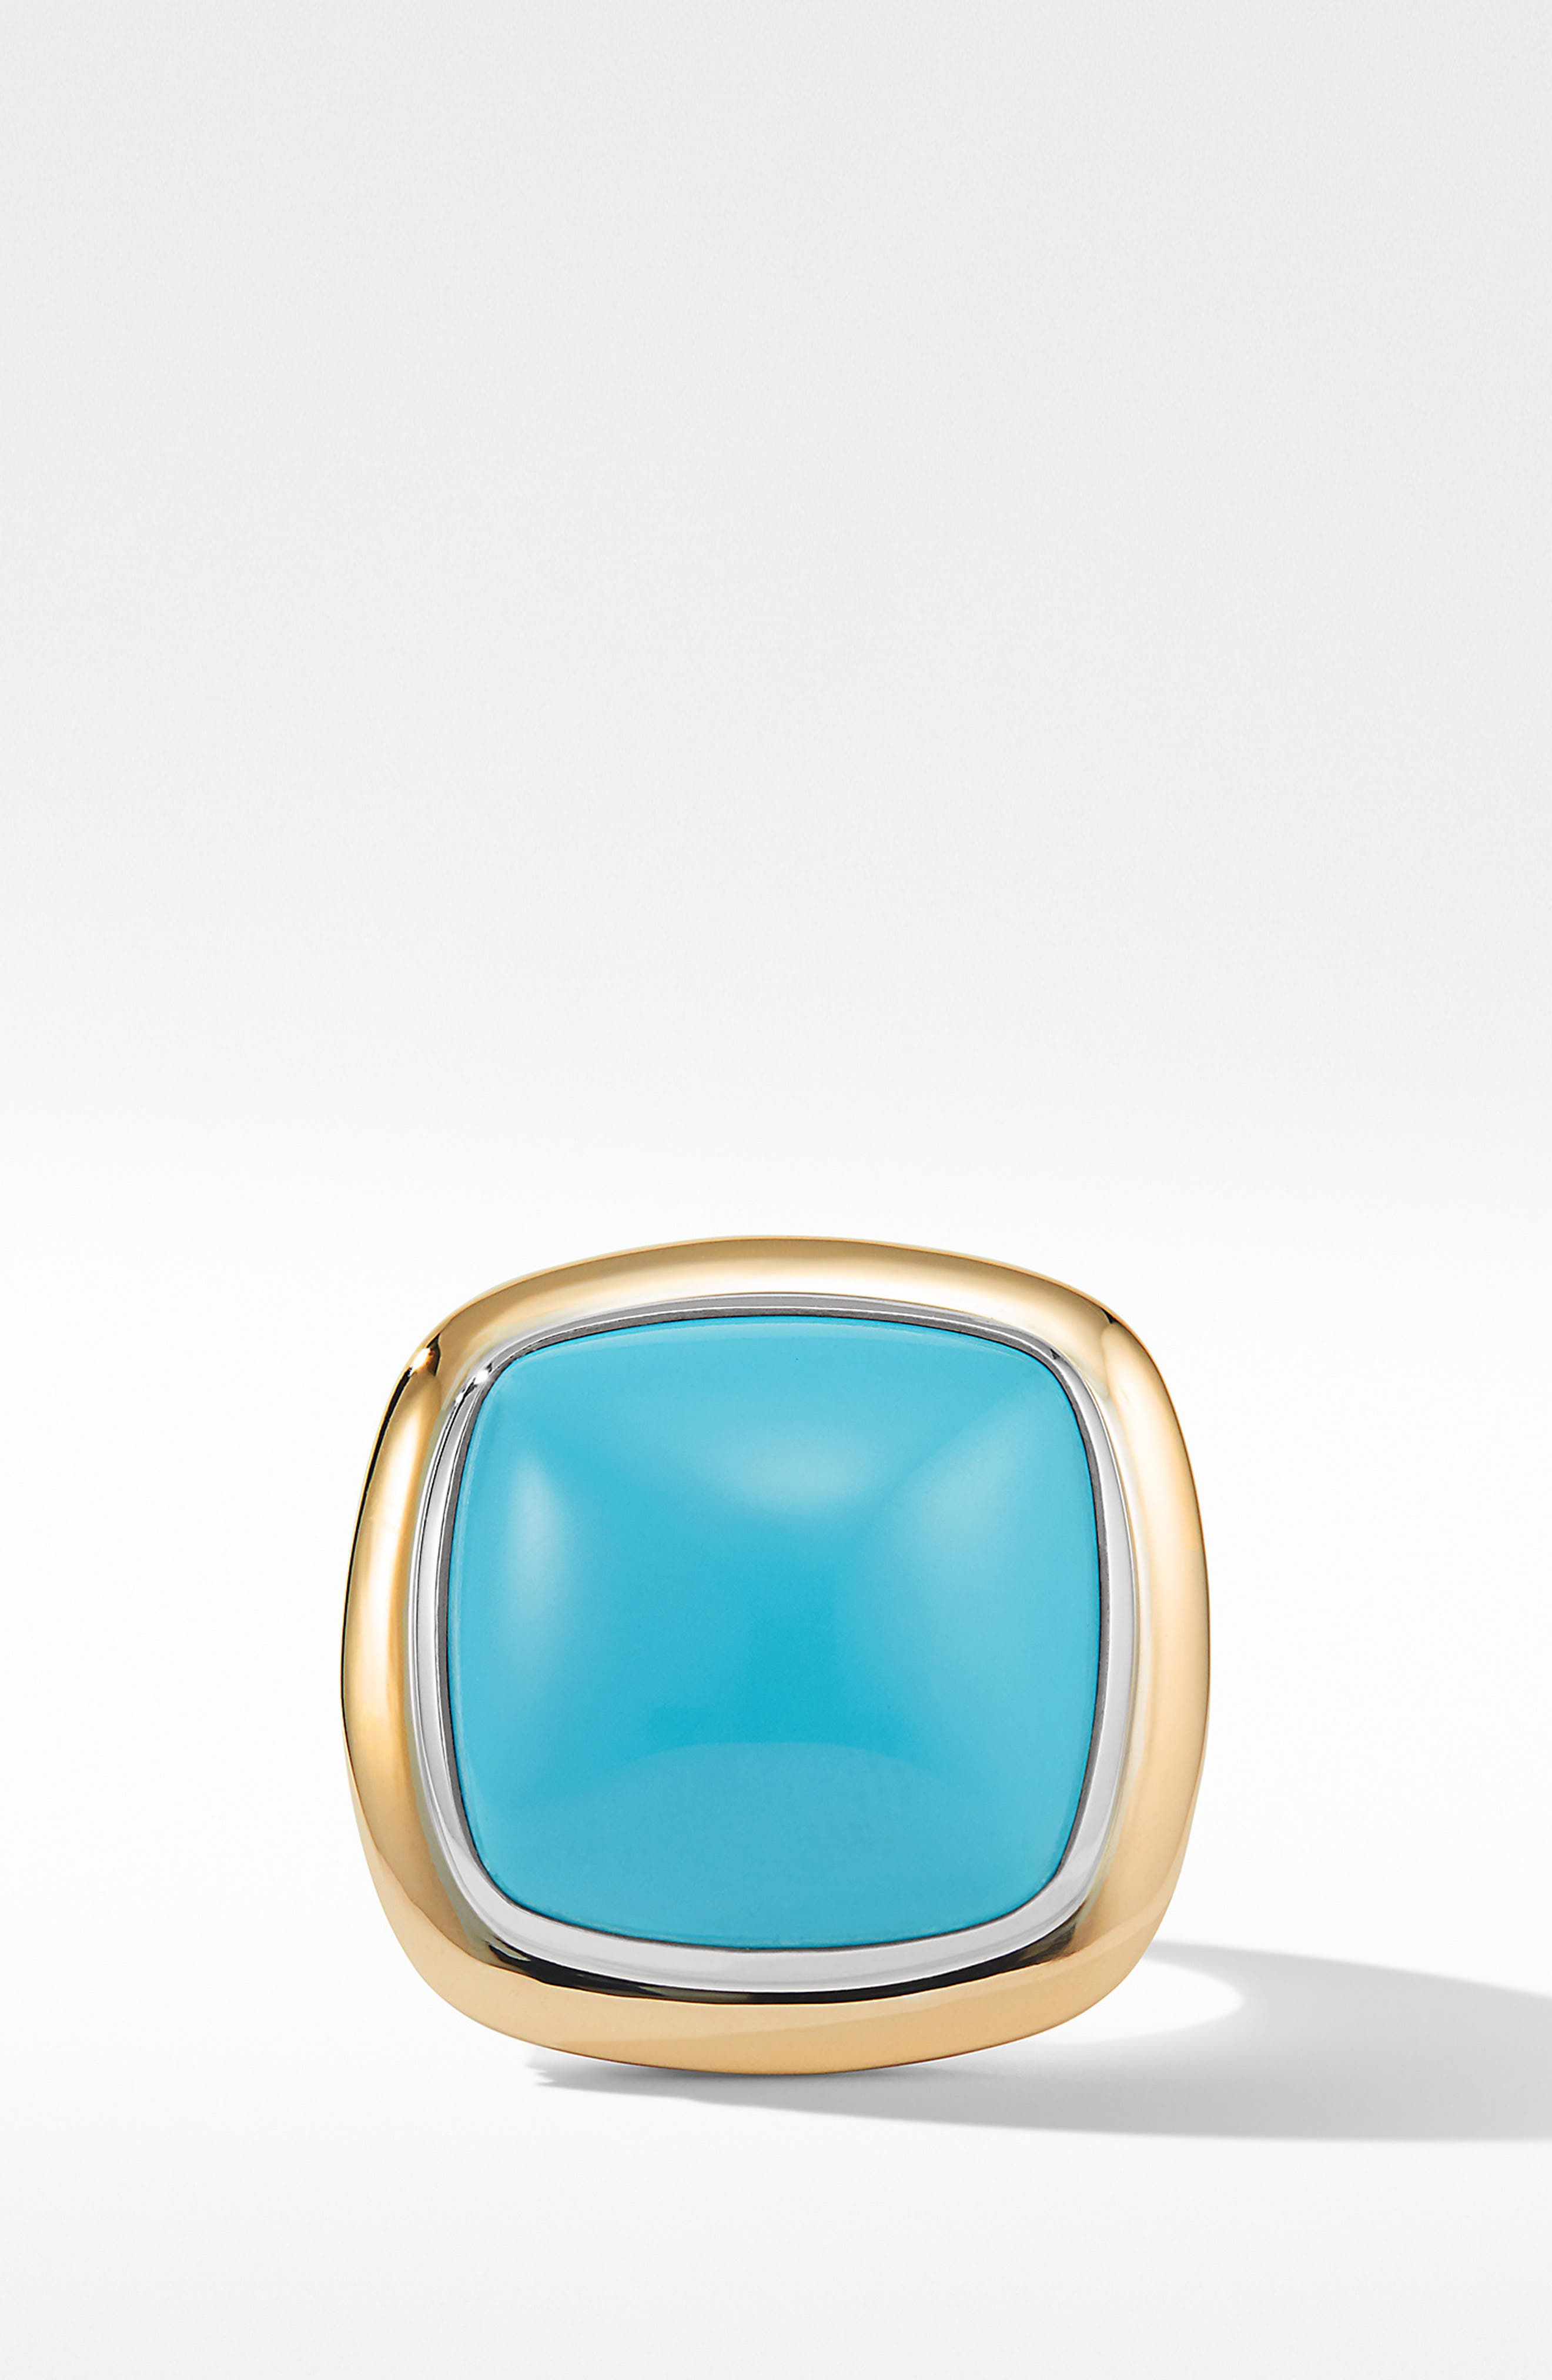 DAVID YURMAN, Albion<sup>®</sup> Statement Ring with 18K Gold and Champagne Citrine or Reconstituted Turquoise, Alternate thumbnail 2, color, RECONSTITUTED TURQUOISE